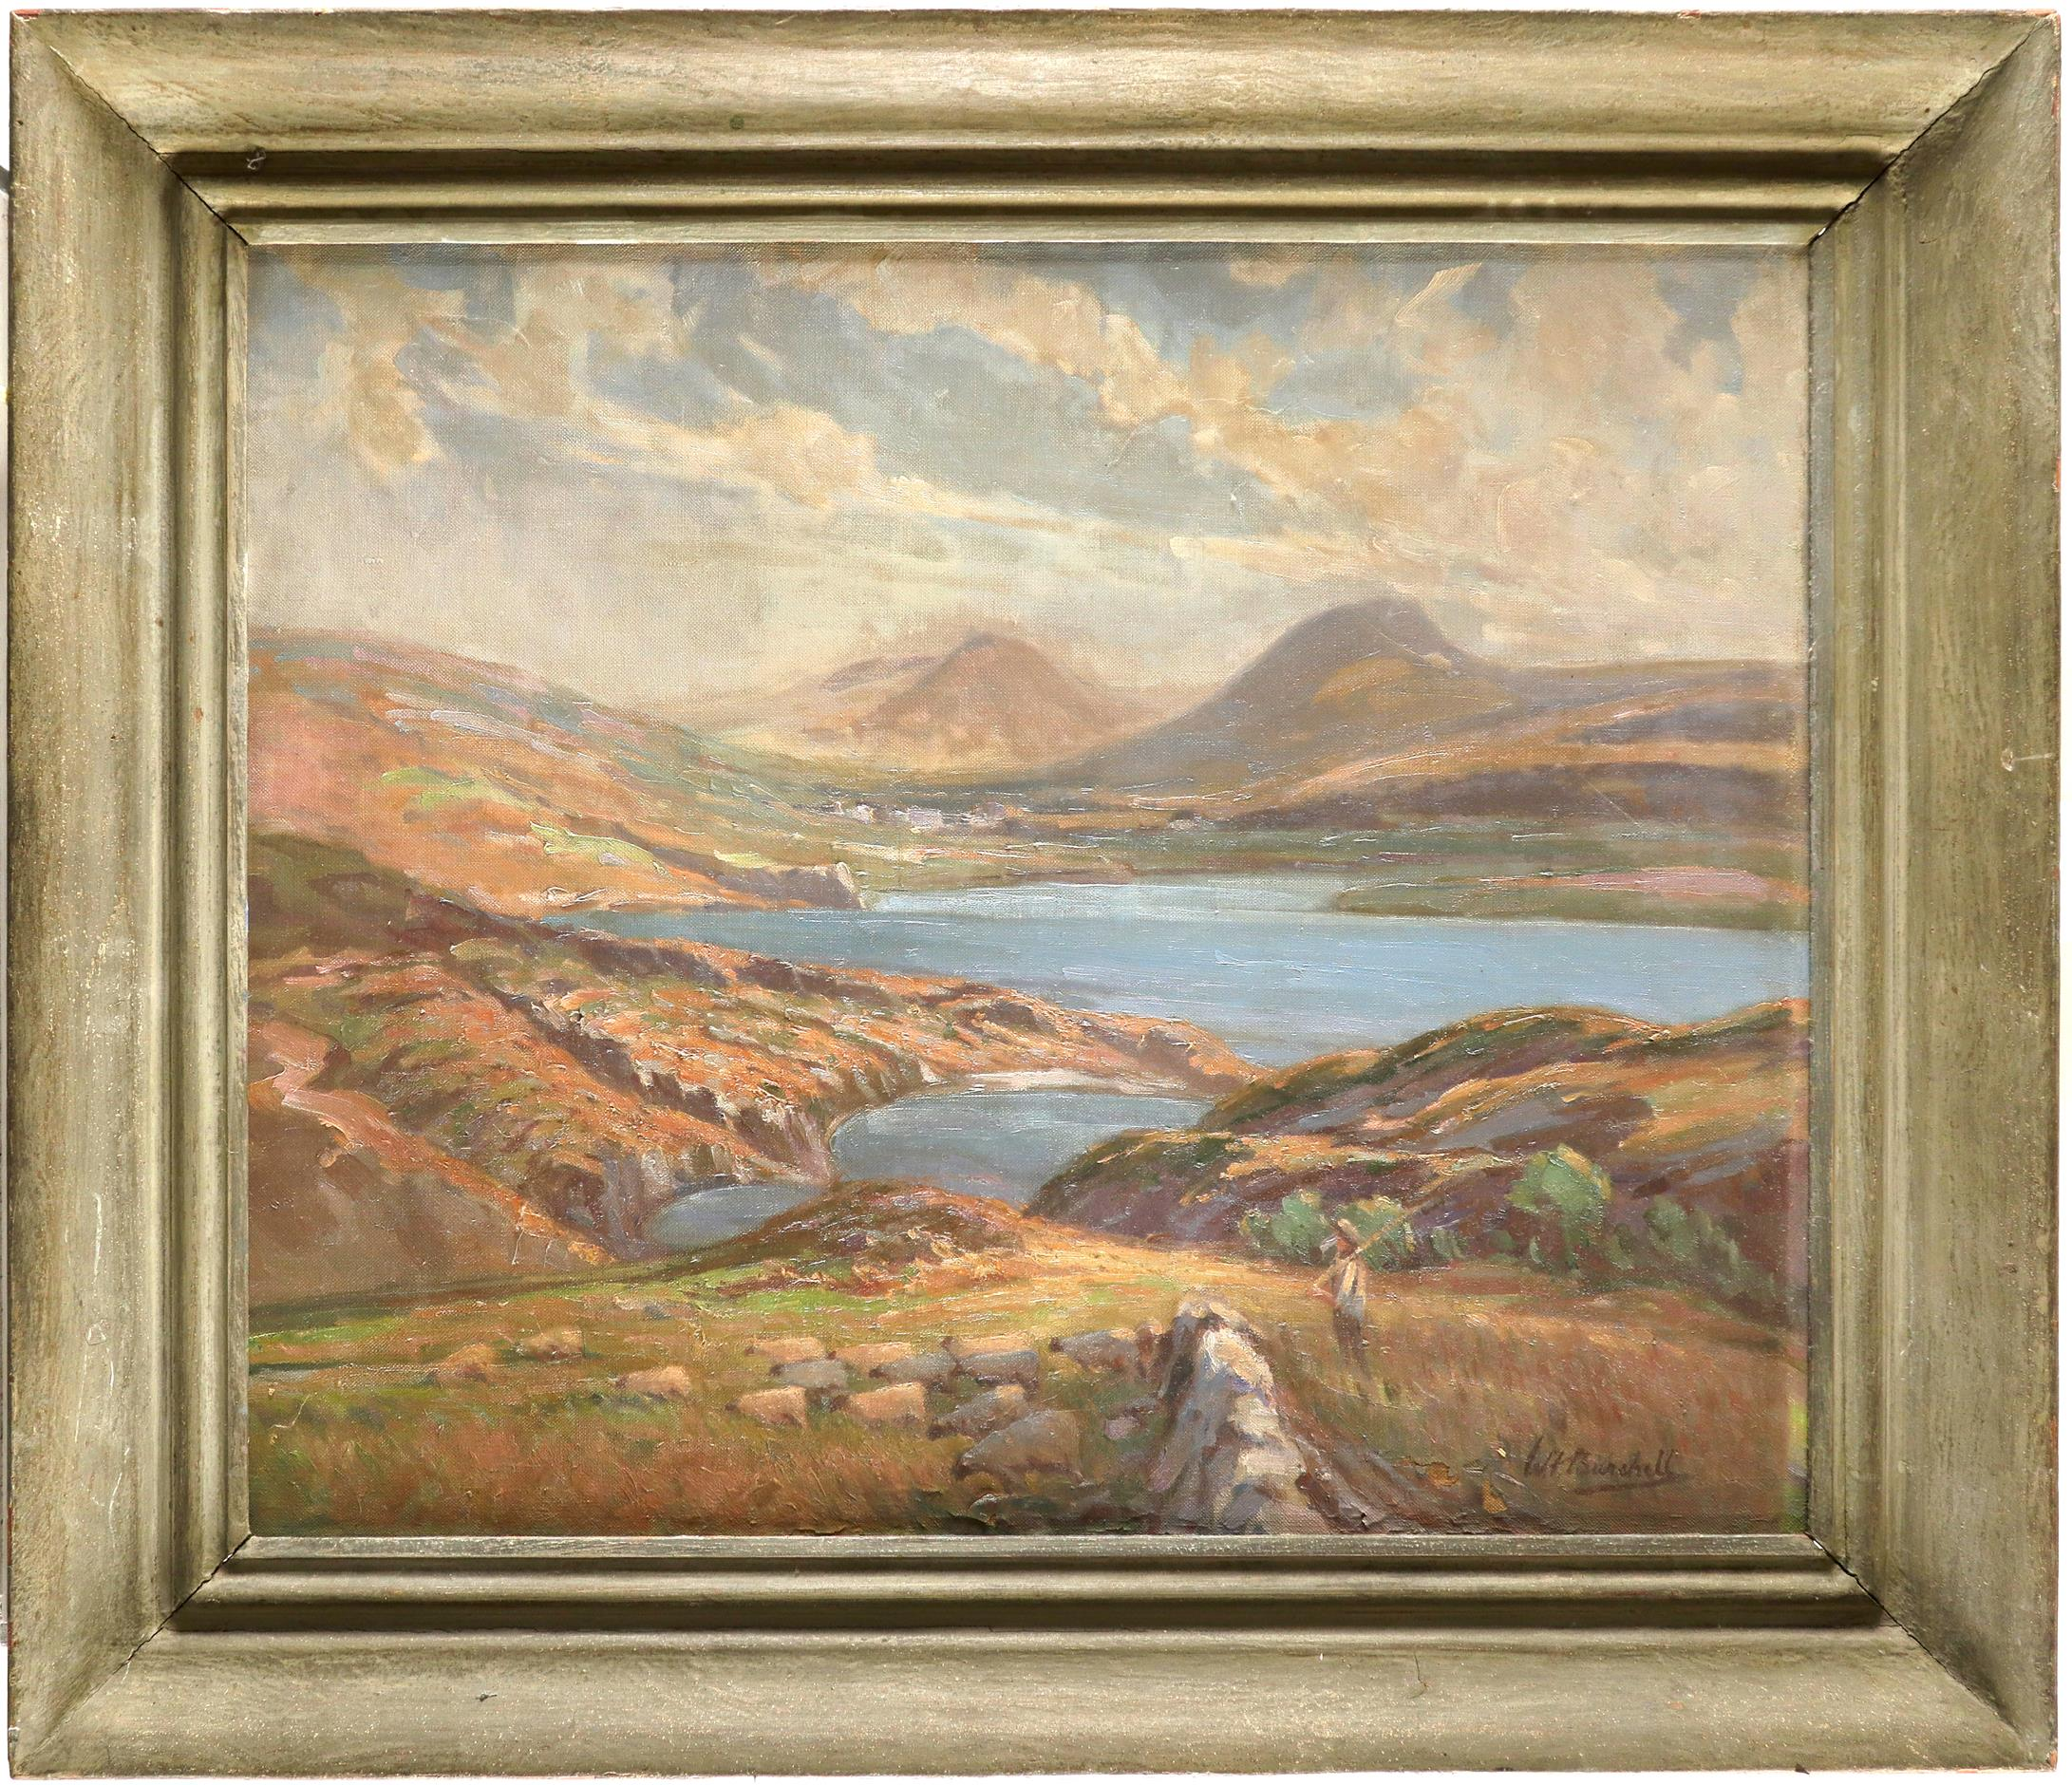 William F. Burchell (act. 1909-1937) A Scottish Loch Signed W F Burchell (lower right) Oil on canvas - Image 2 of 3